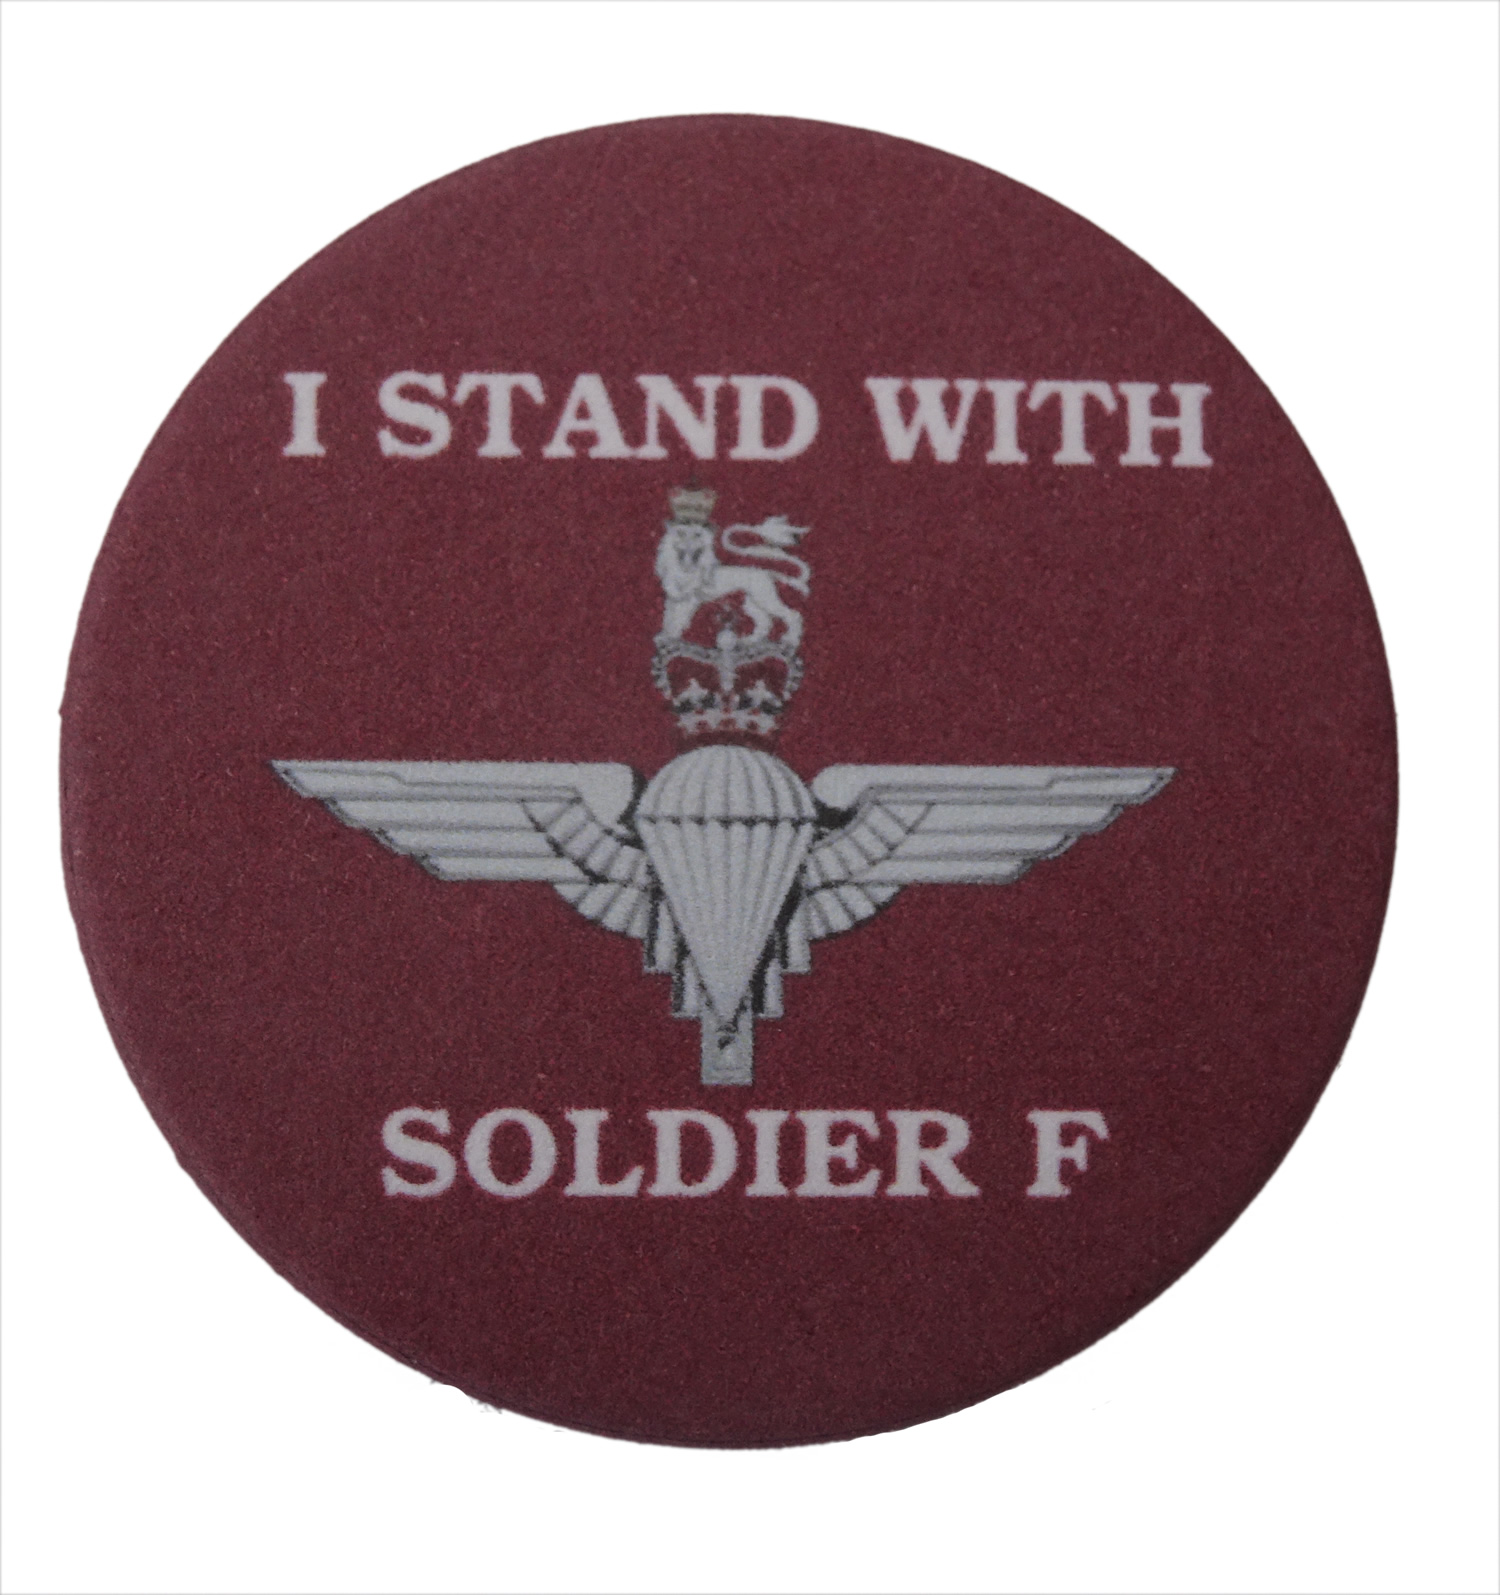 I stand with soldier F badge